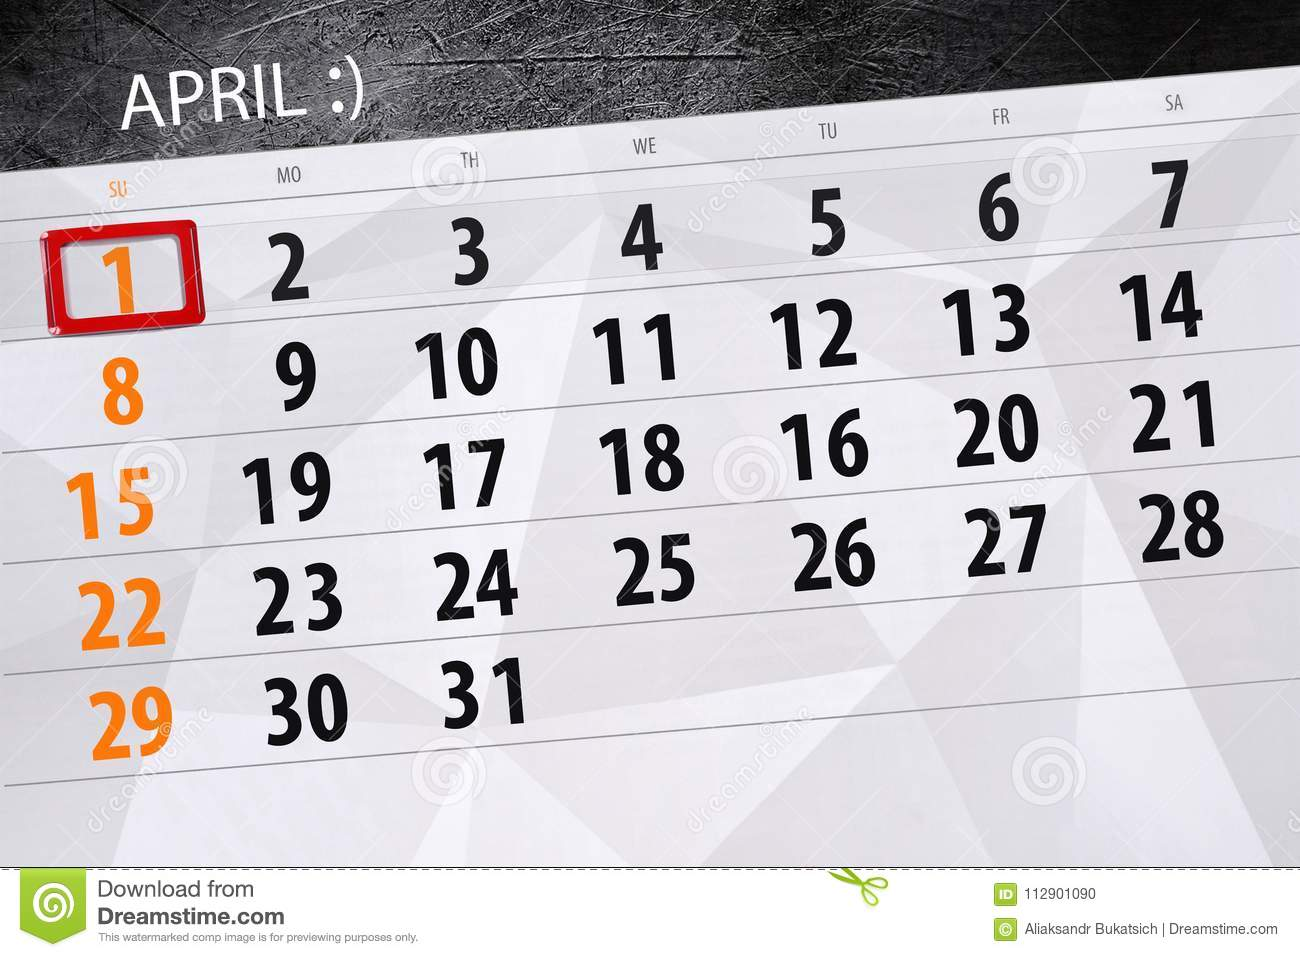 Dupe jour calendrier page 2018 le 1er avril